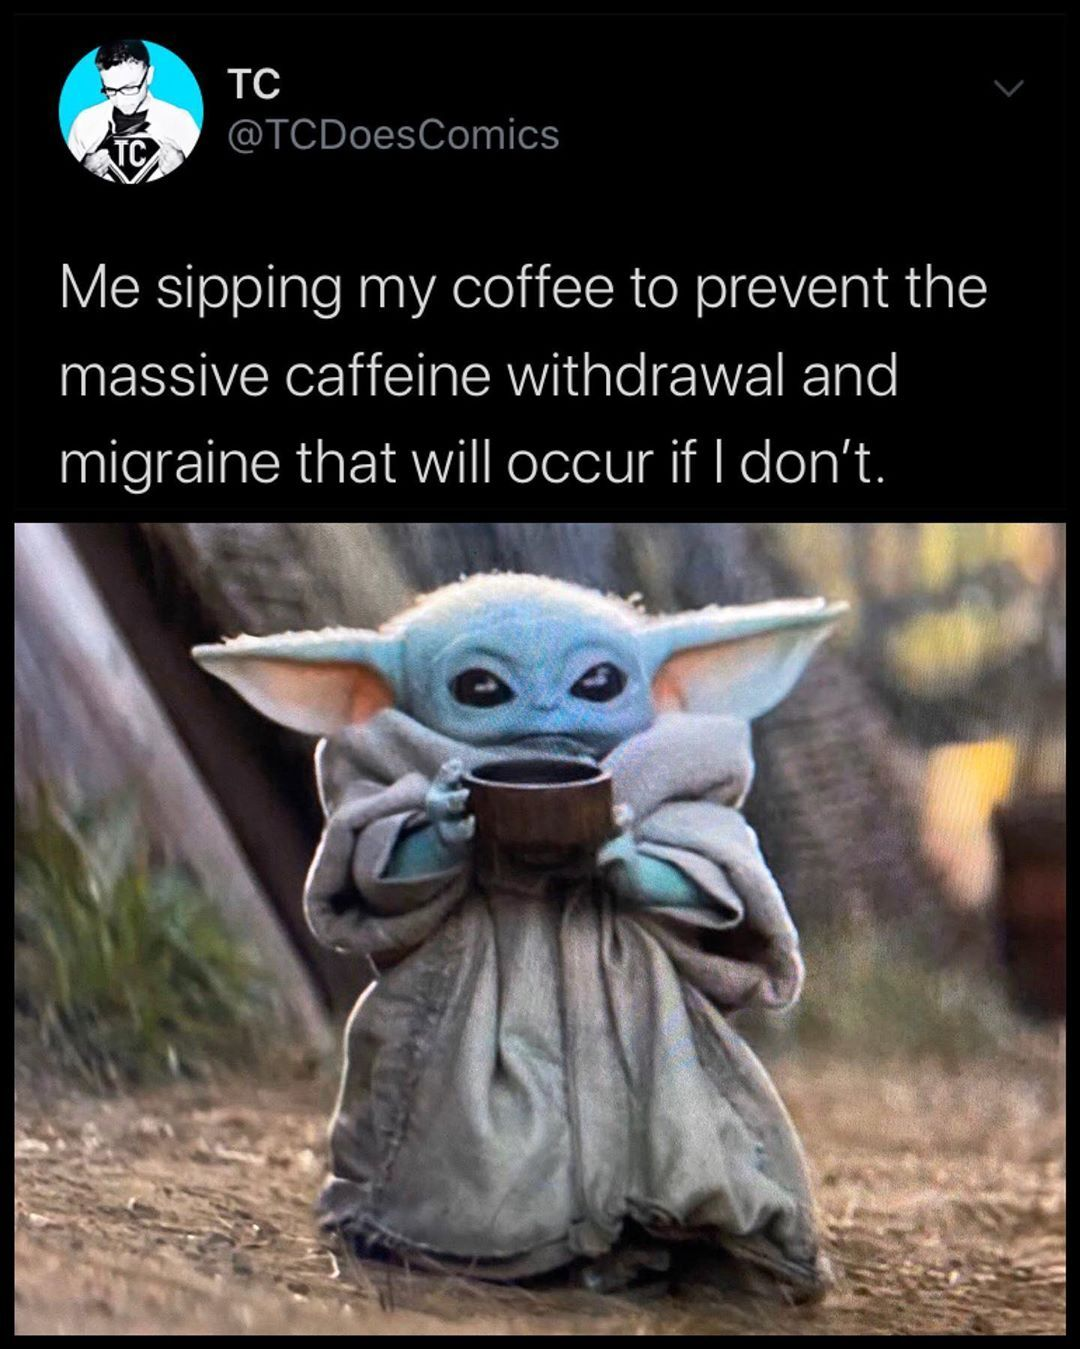 8 219 Likes 58 Comments Tc Tcdoescomics On Instagram I Really Need To Taper Off Coffee Yo Need To Switch To Tea Yoda Meme Cute Memes Star Wars Memes